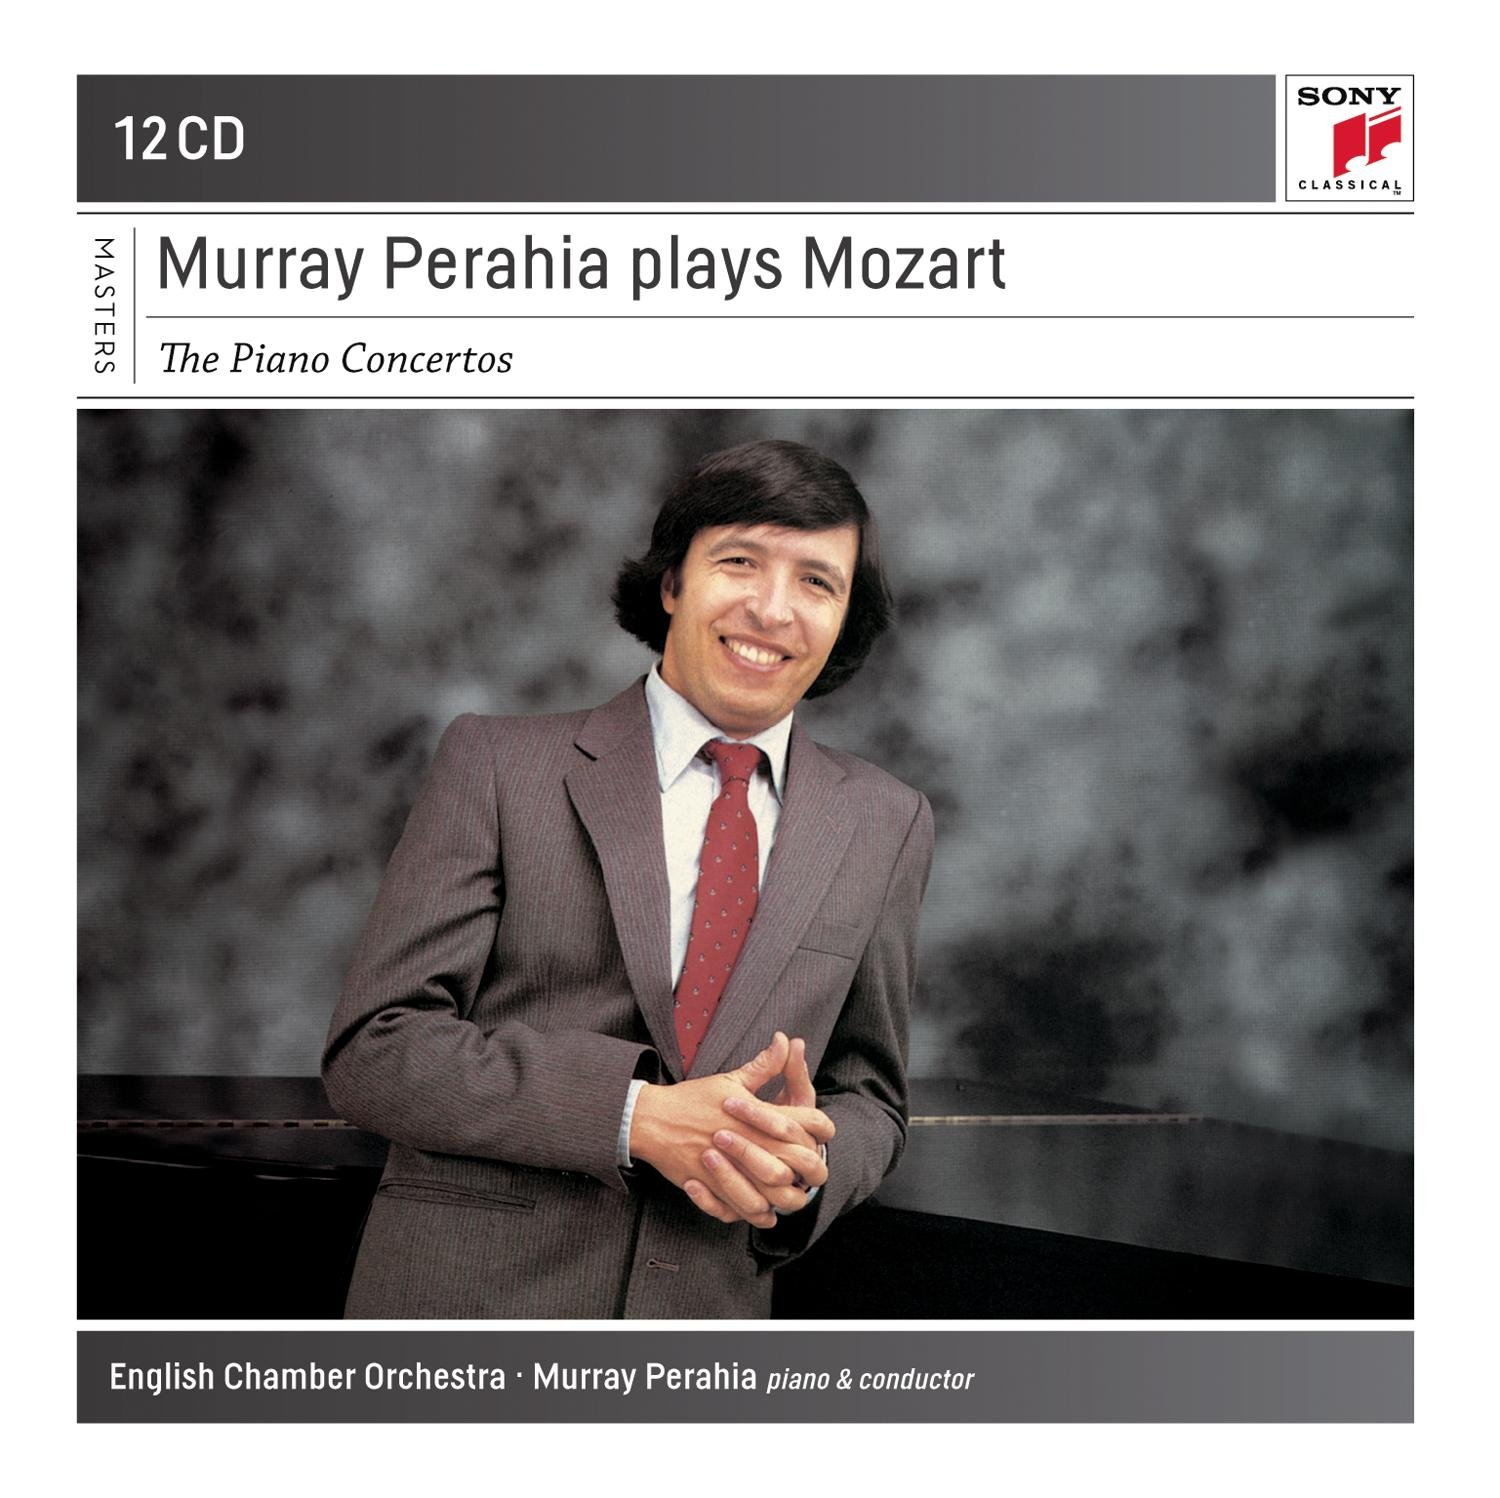 Murray Perahia plays Mozart - The Piano Concertos by Sony Masterworks